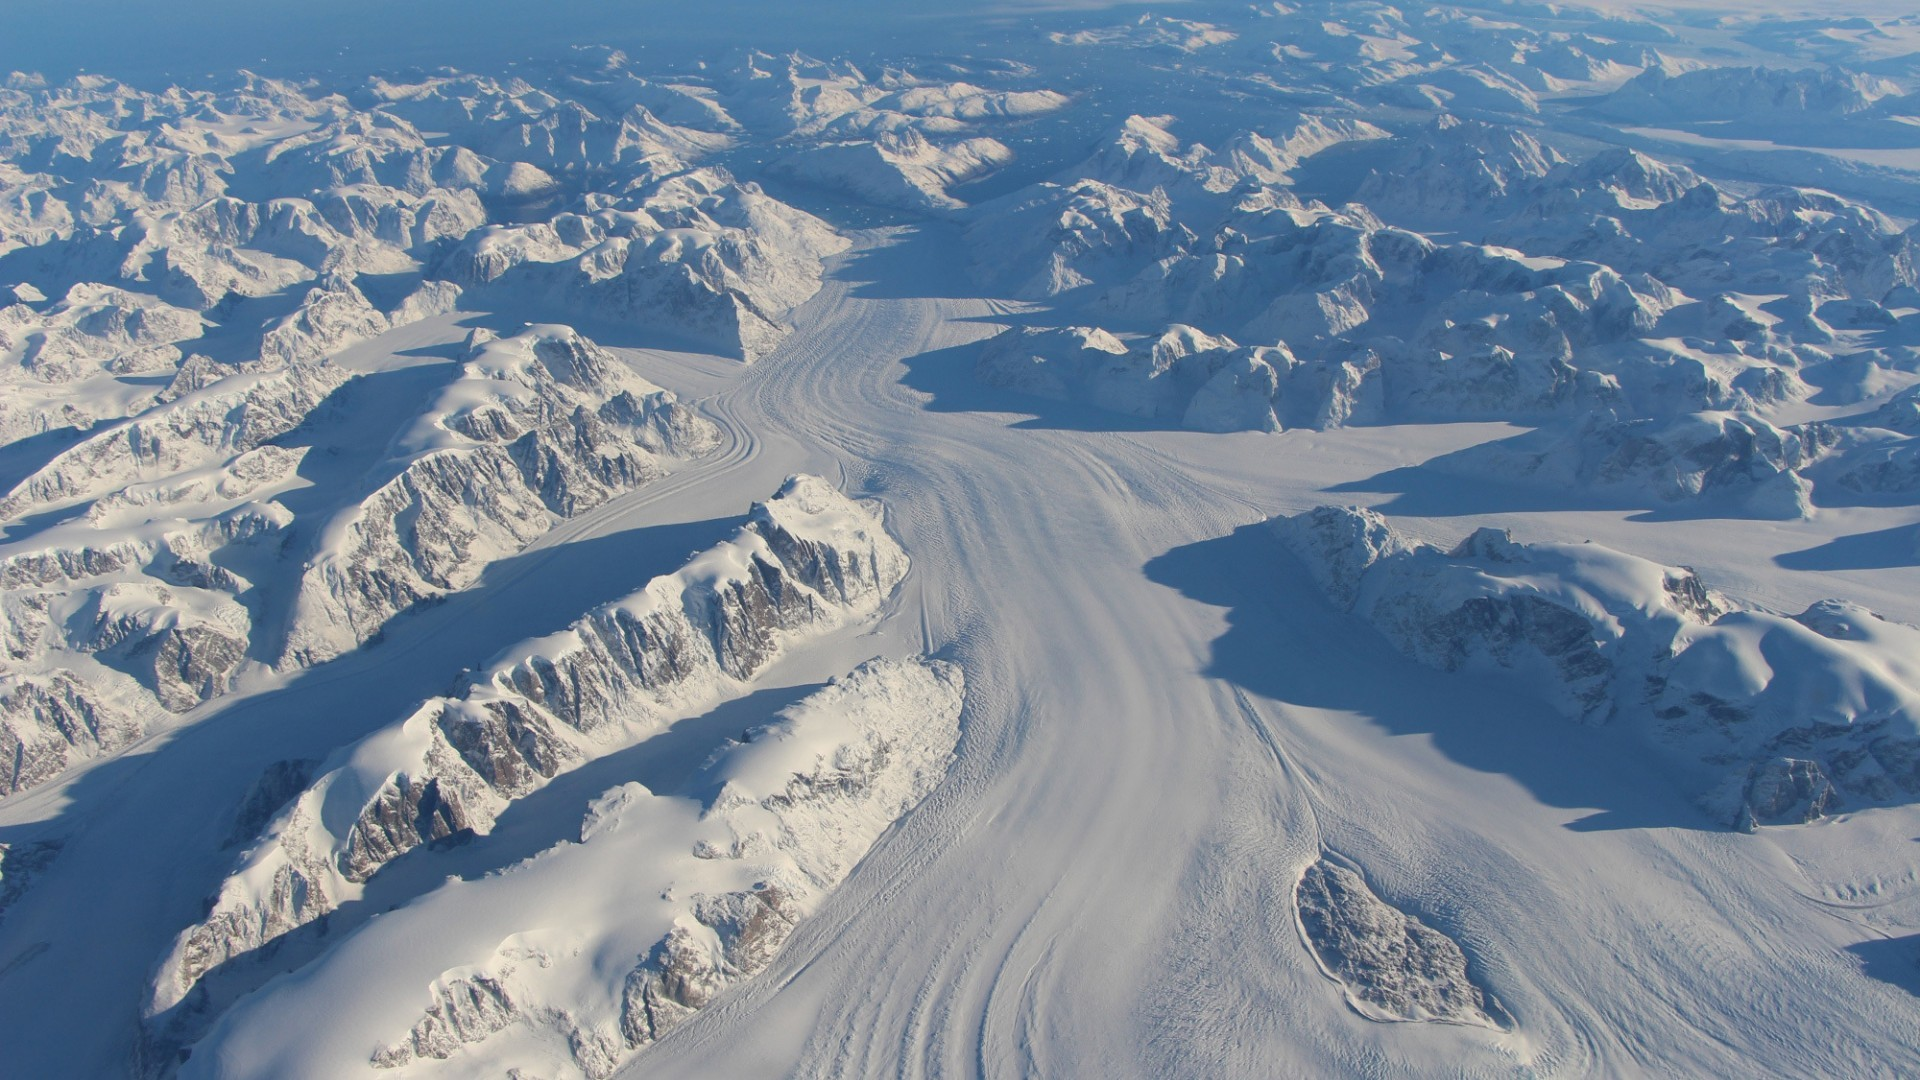 General 1920x1080 nature landscape hills winter snow Greenland glaciers sunlight shadow aerial view rock mountains